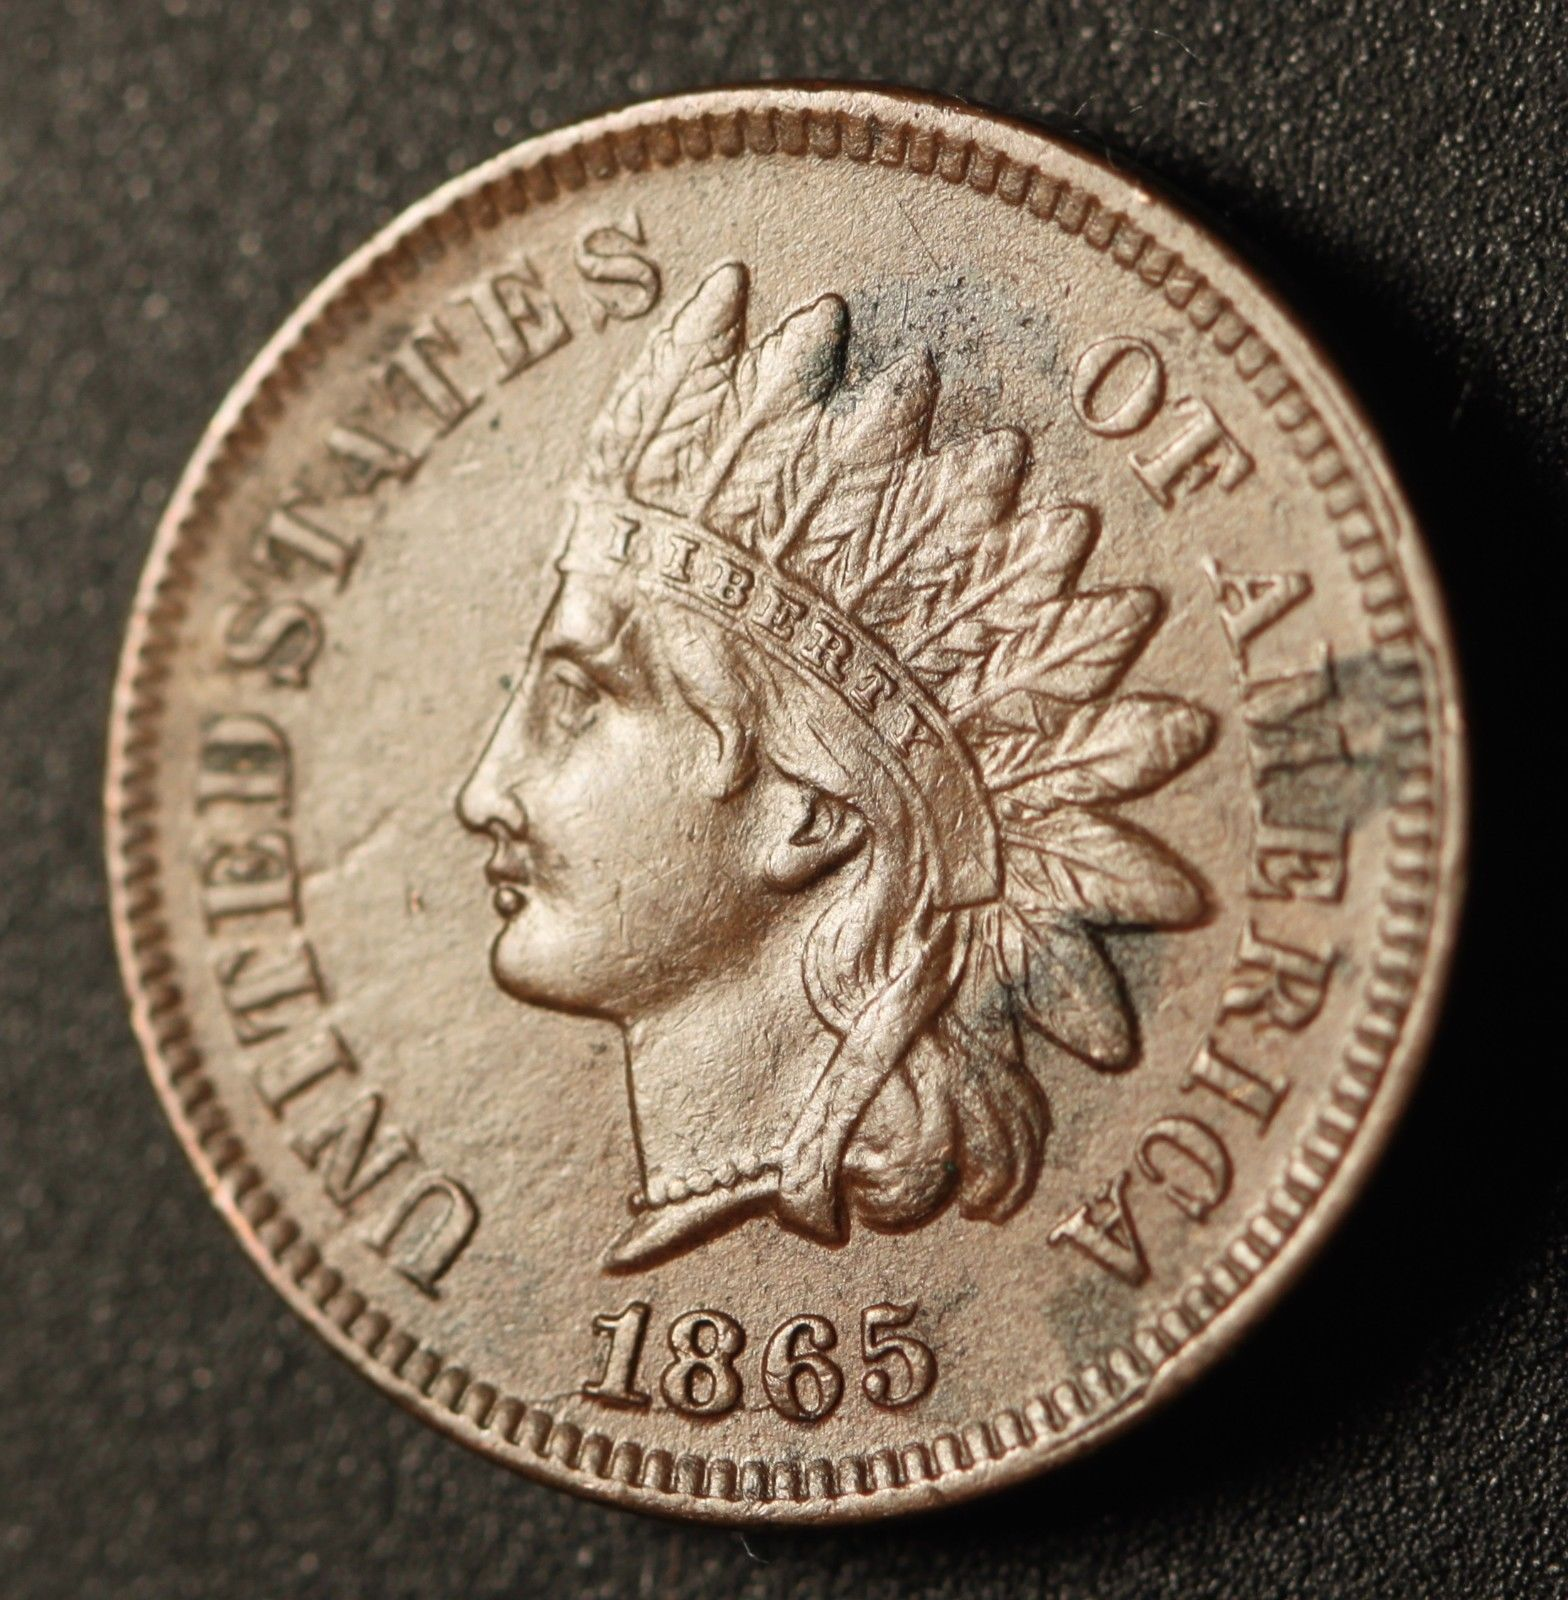 1865 Fancy 5 RPD-004 - Indian Head Penny - Ed Nathanson